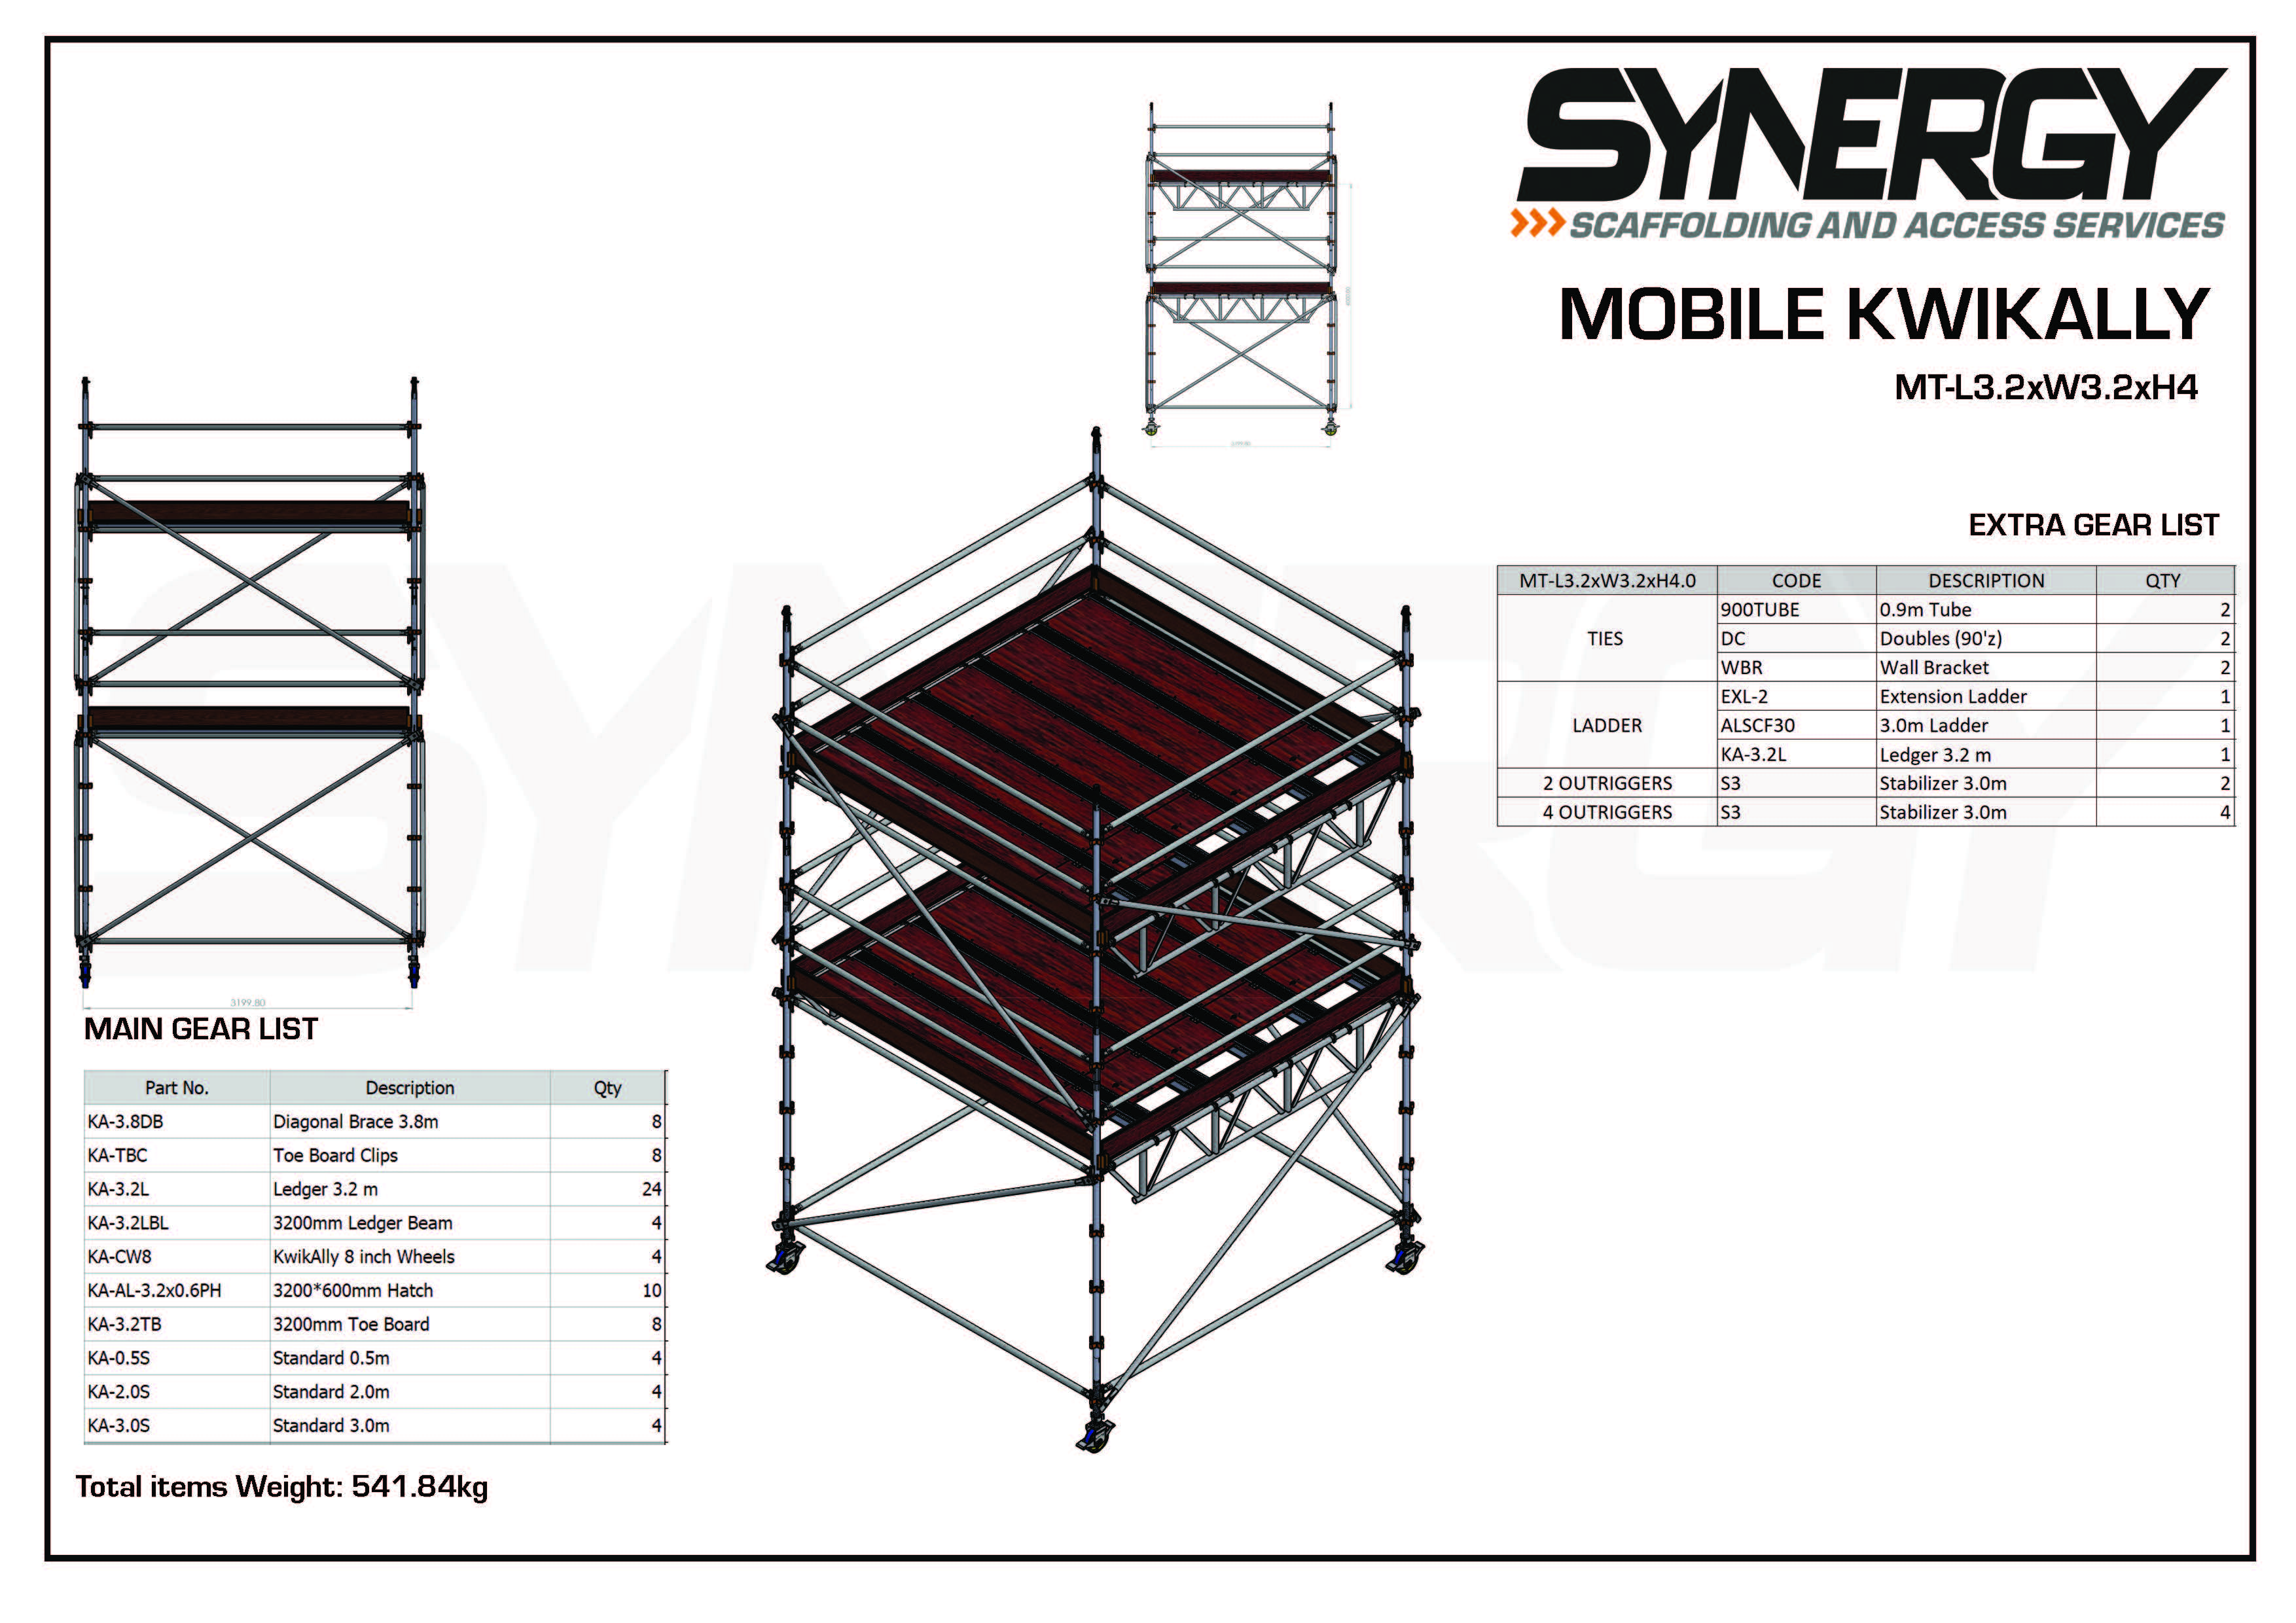 Kwikally Mobile 3.2m x 3.2m x 4m(Height)